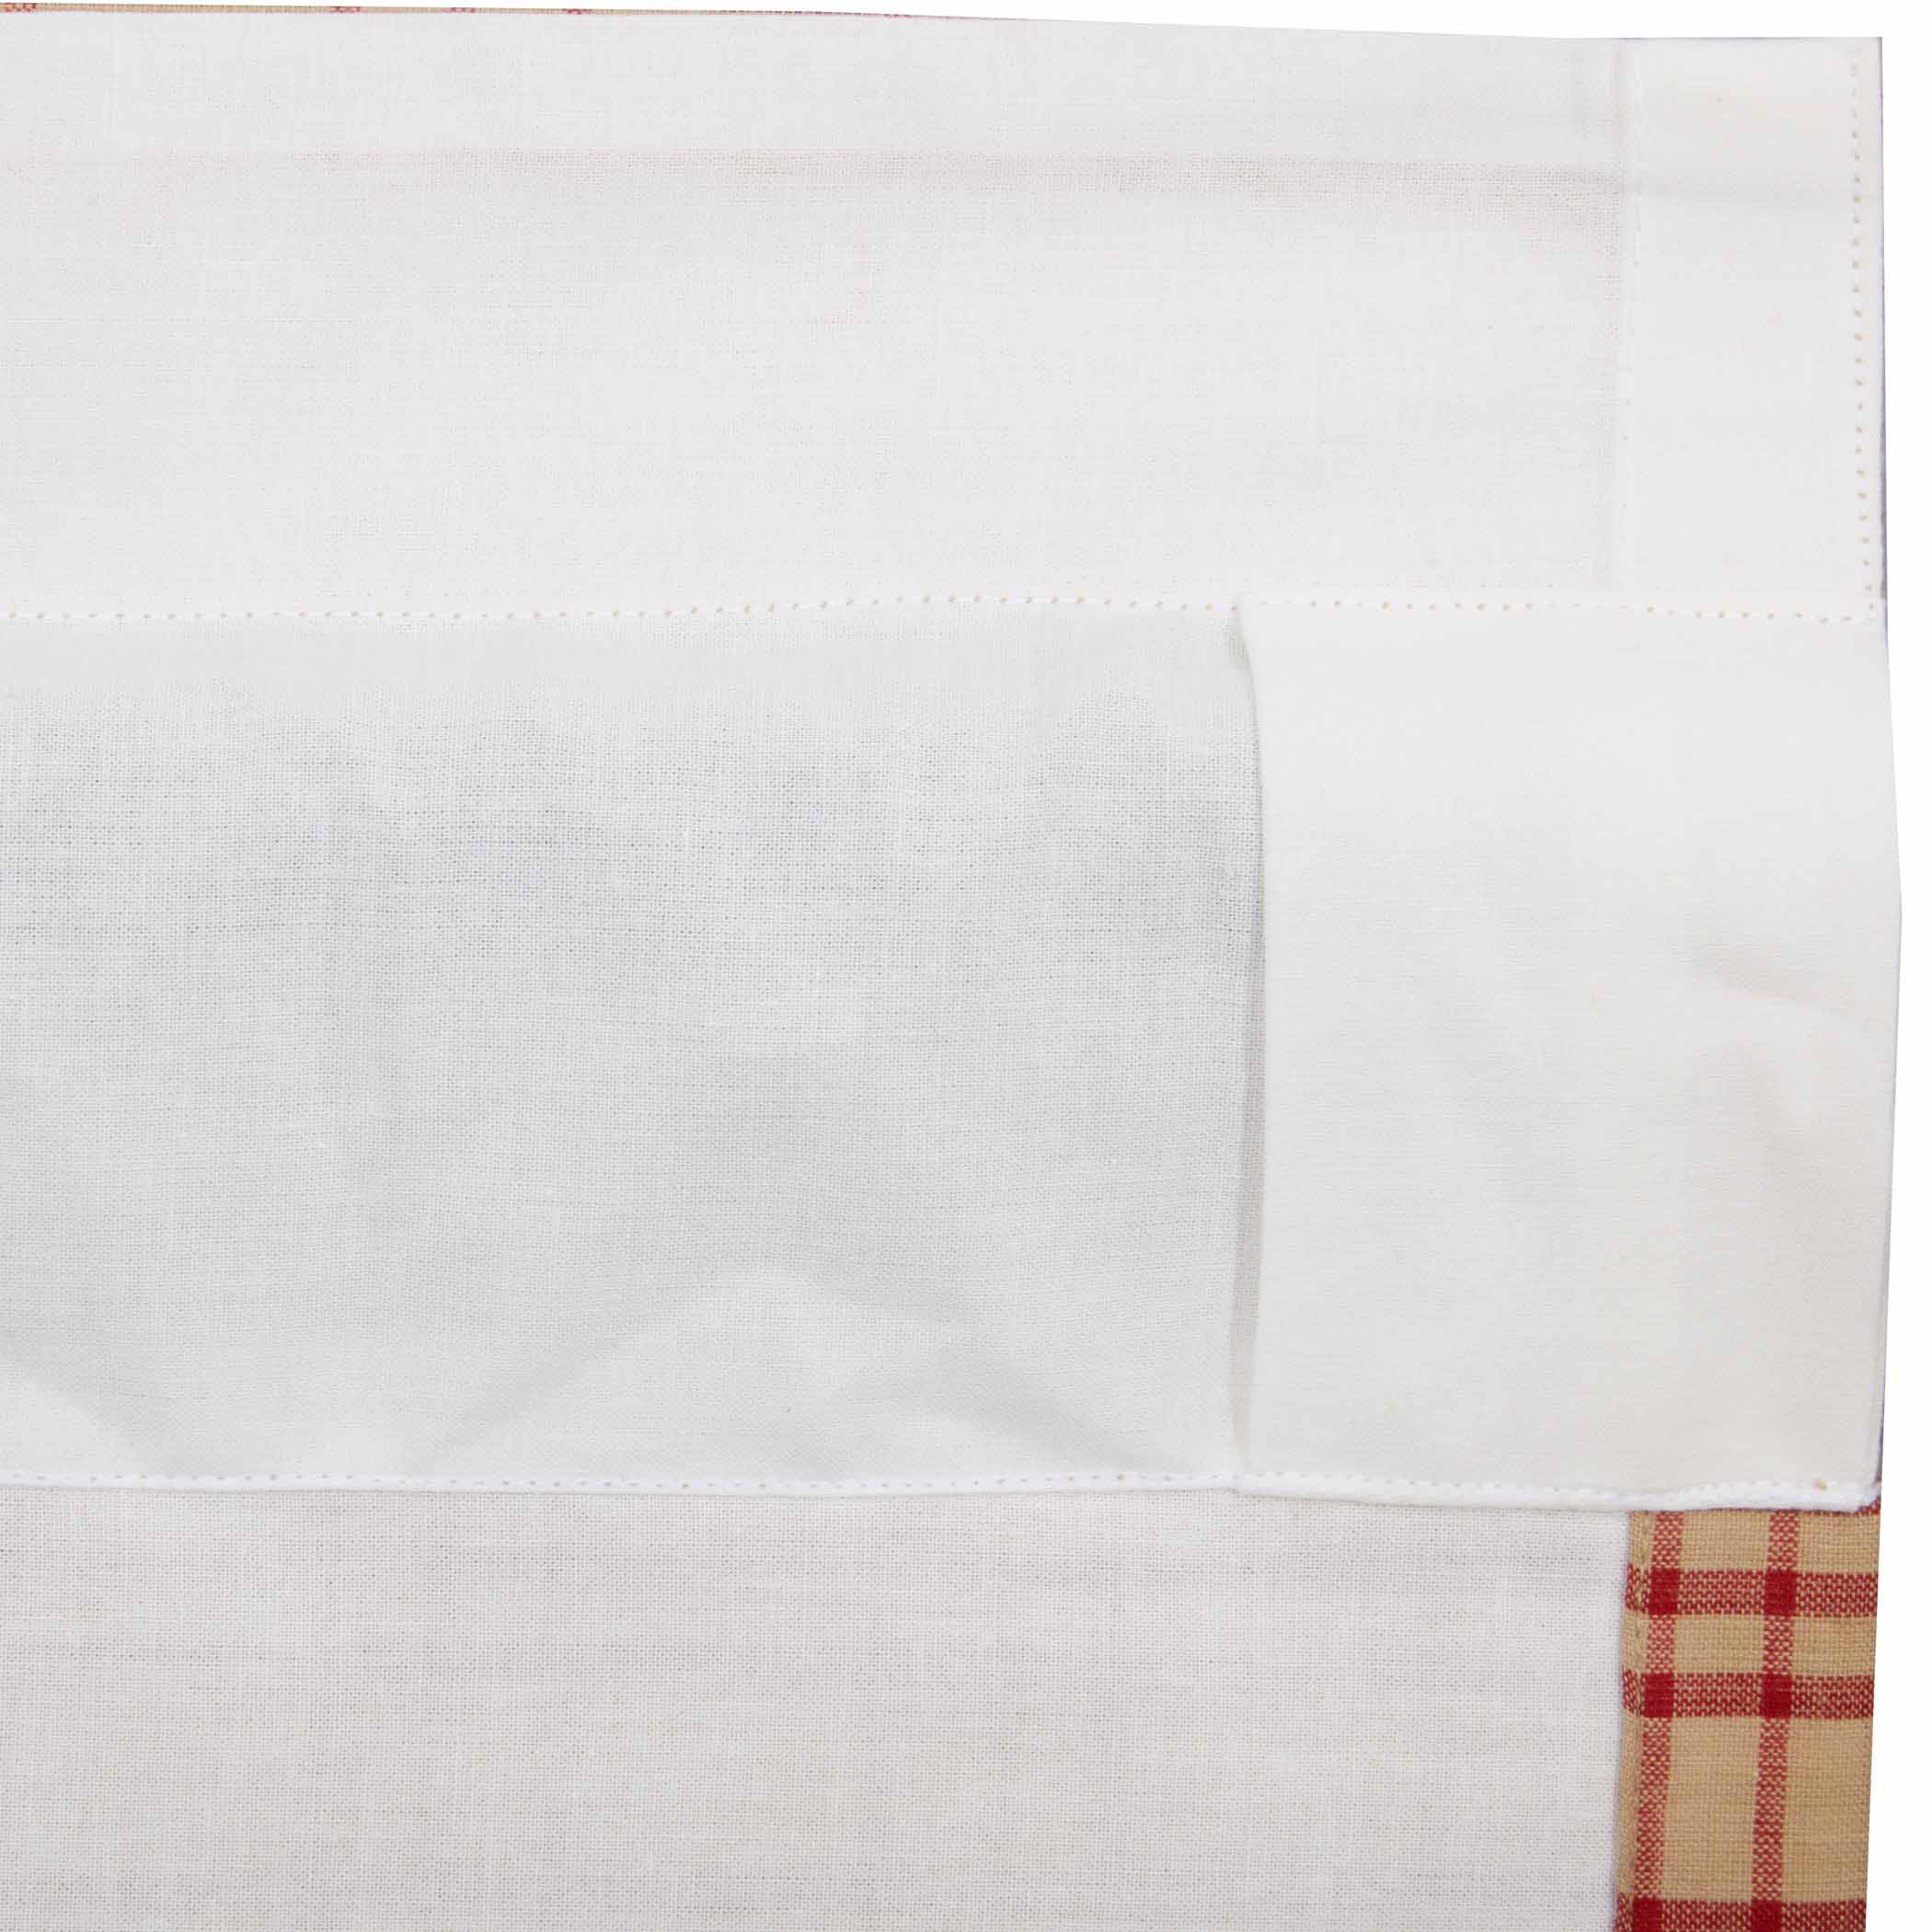 Sawyer-Mill-Red-Plaid-Valance-16x60-image-3